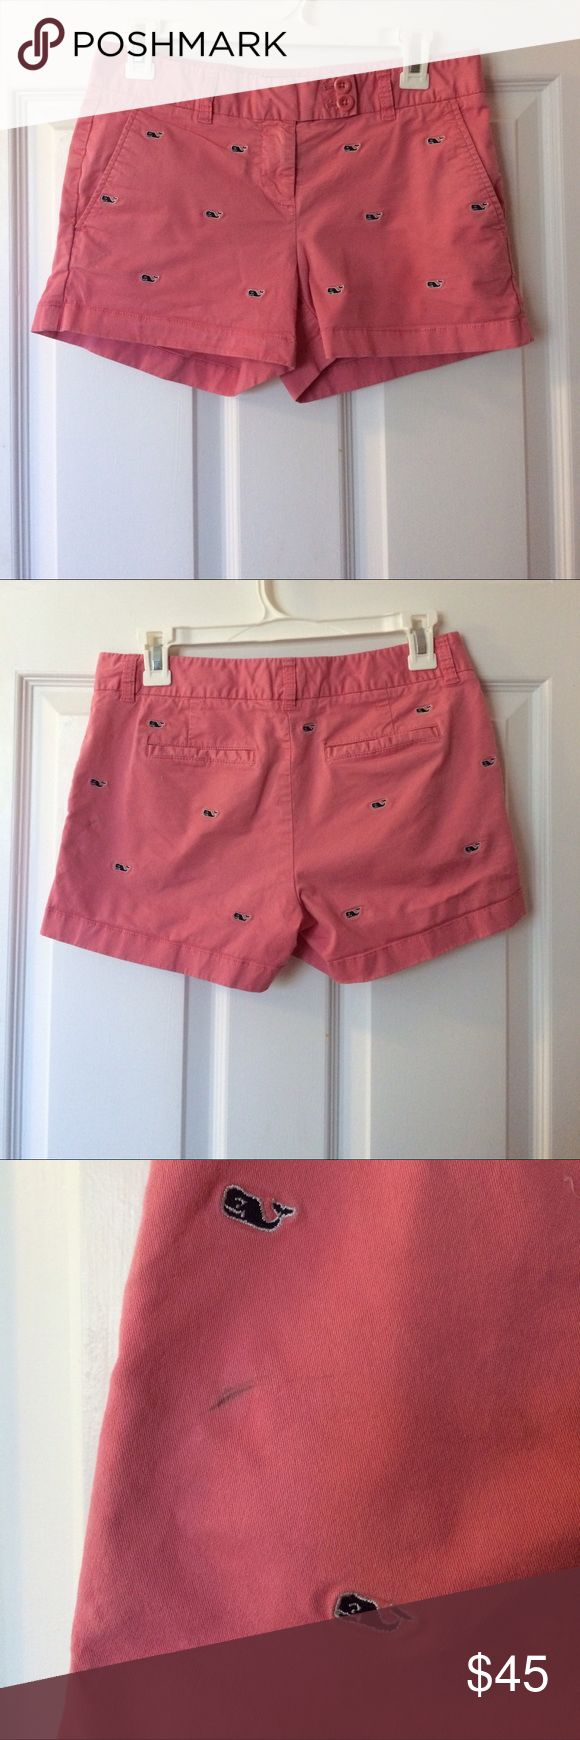 Whale embroidered shorts Vineyard Vines shorts // pink with navy embroidered whales // zip-up with a clasp and double button // small mark on back left side (pictured in 3rd picture) // size 2 // have been through washer and dryer // good condition // front pockets // half back pockets Vineyard Vines Shorts